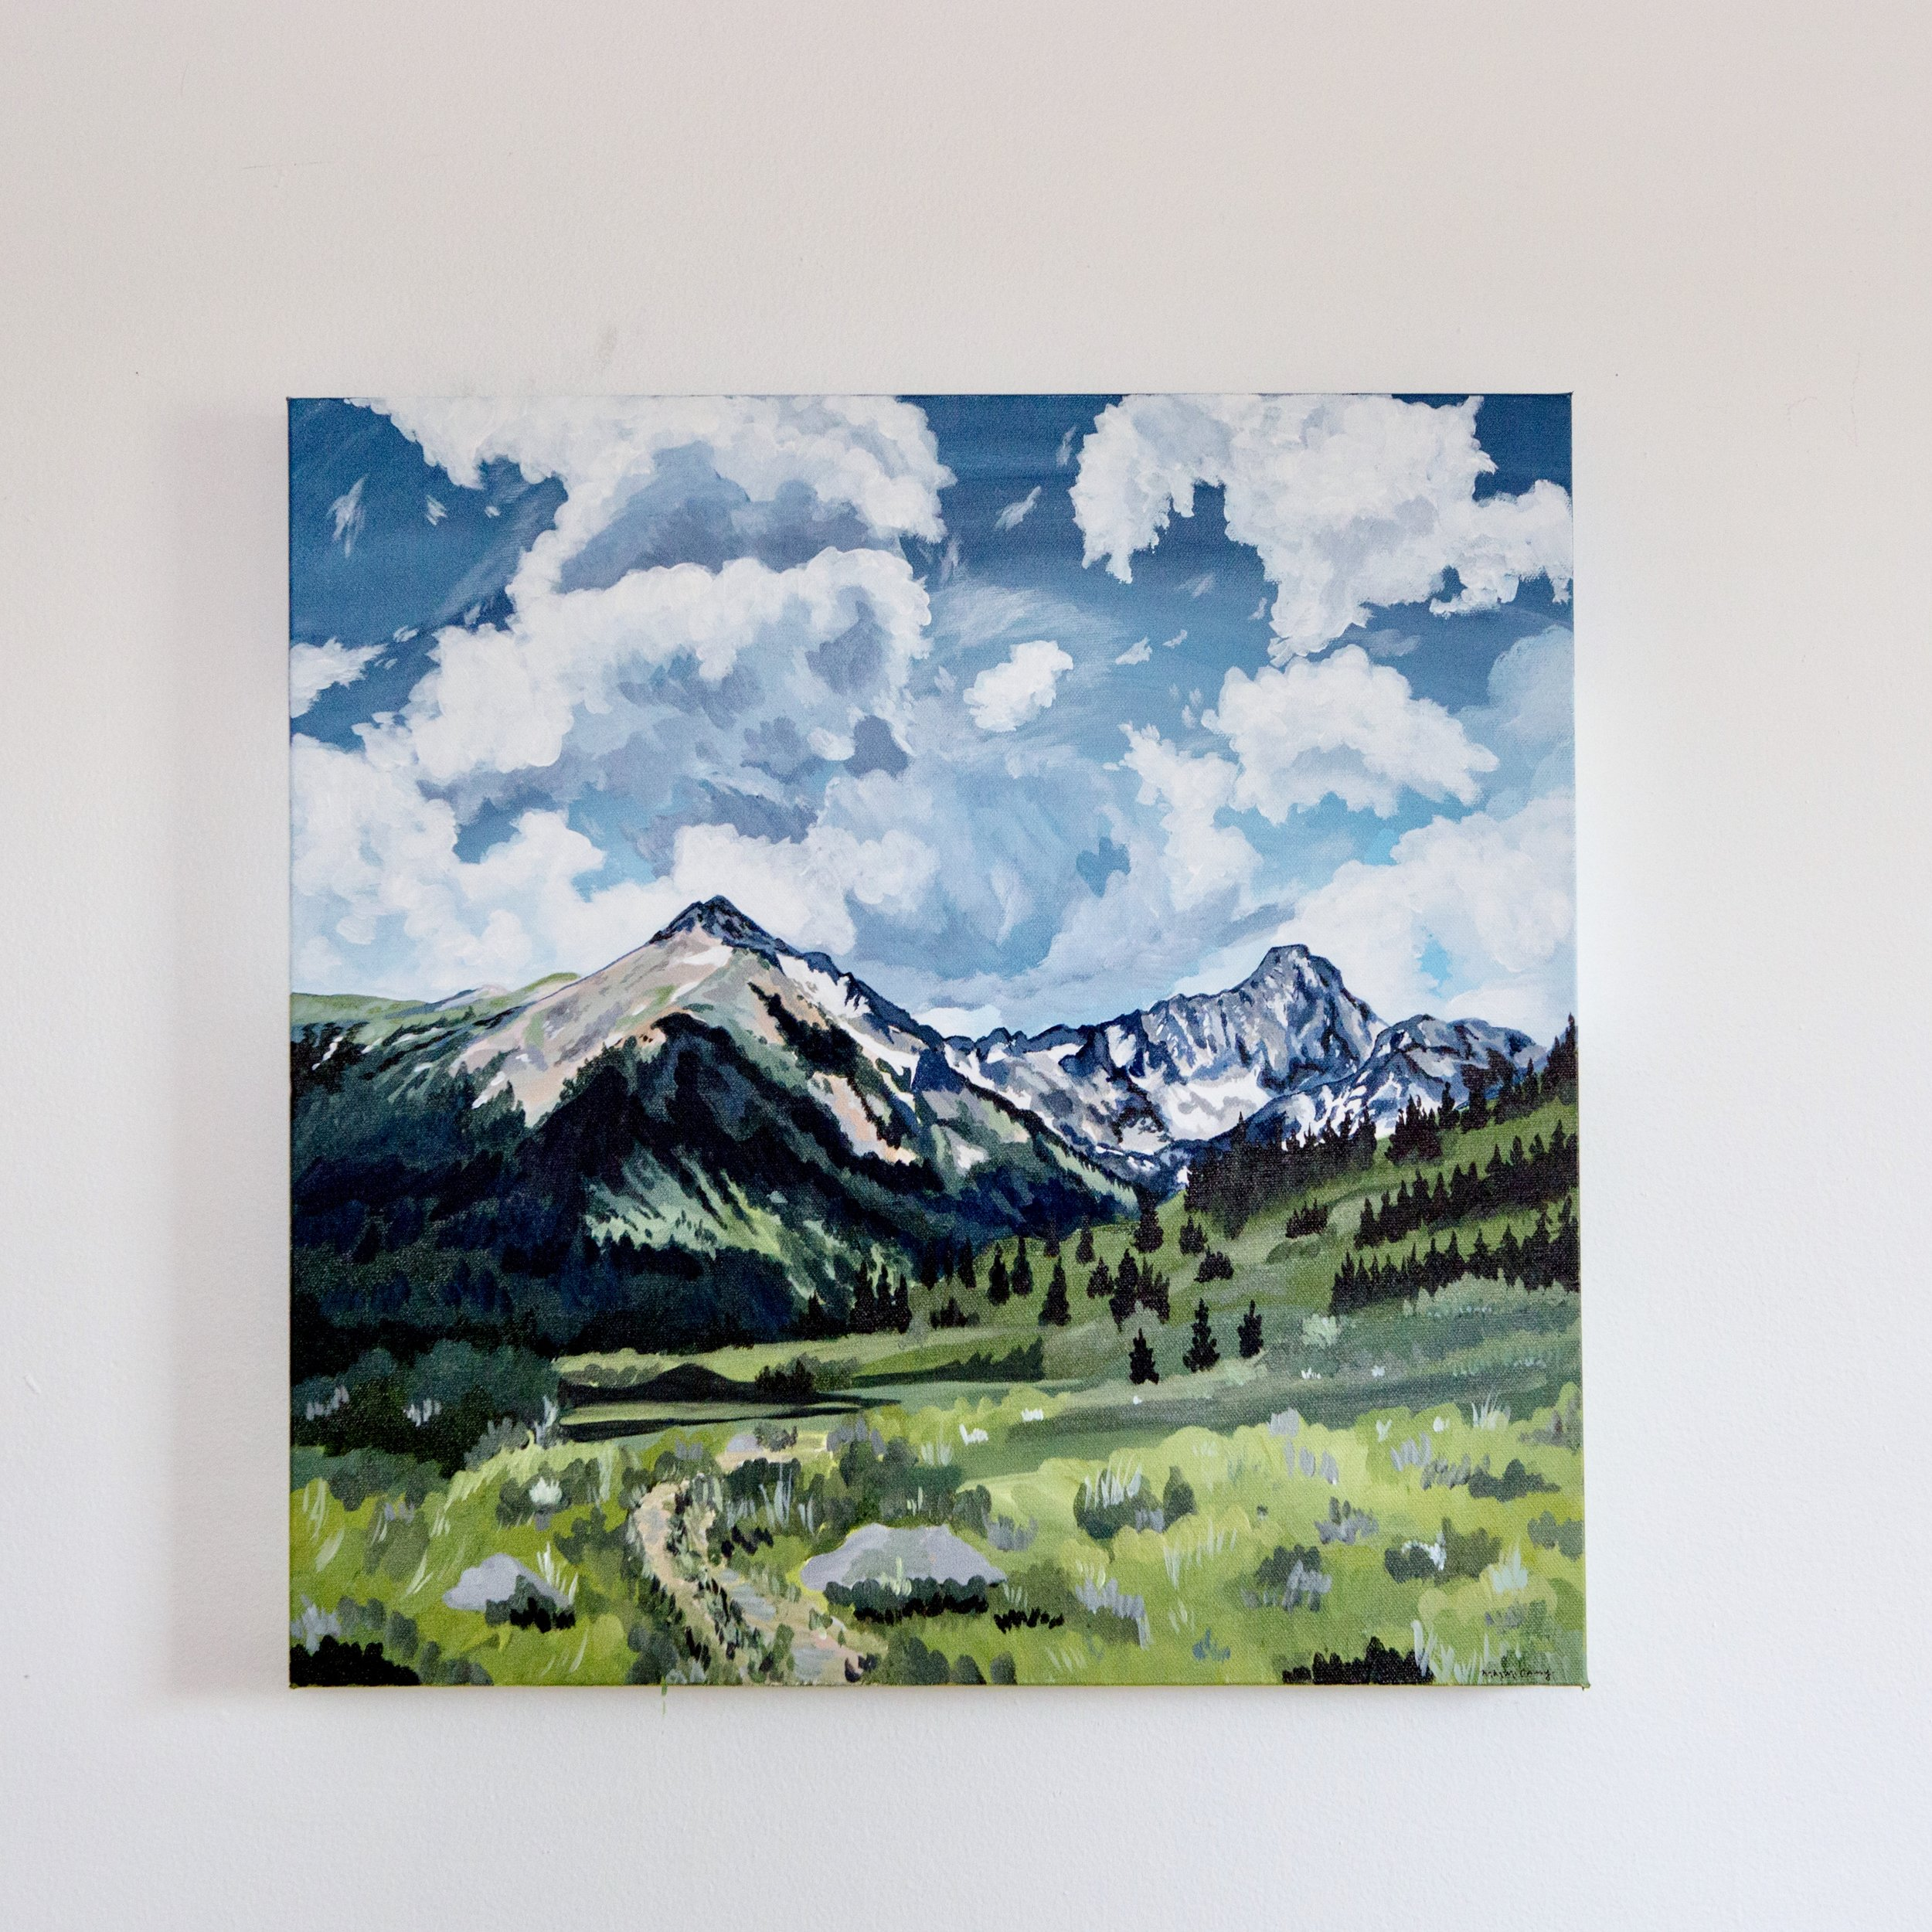 Fortitude  reference Capitol Peak, Colorado, 20x20, acrylic on canvas, purchase  here